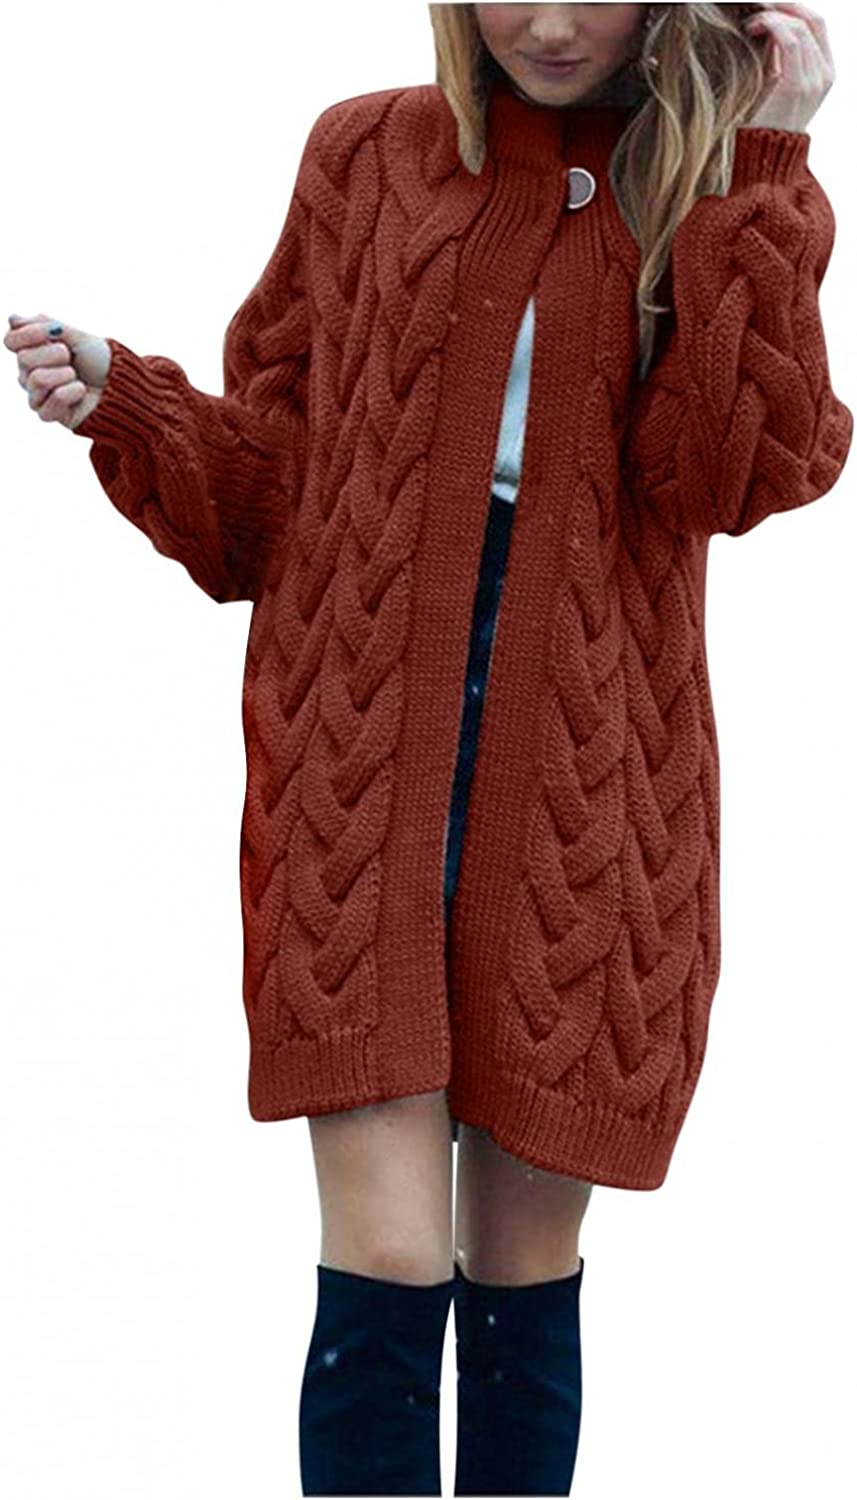 Eduavar Sweaters for Women Cardigan Long Sleeve Cable Knit Sweater Open Front Cardigan Tops Comfy Casual Loose Long Coat